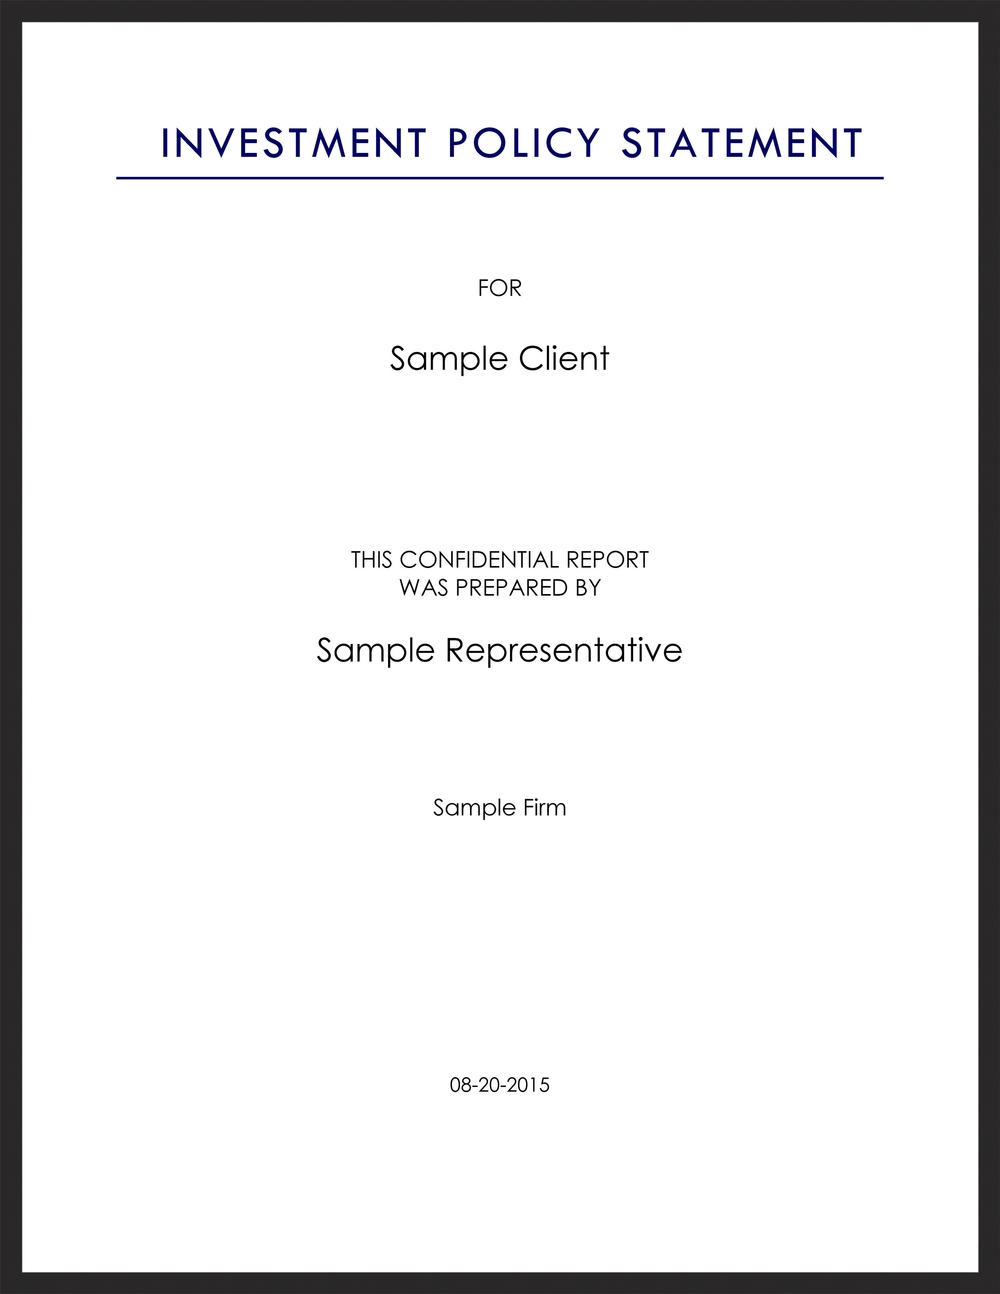 Saratogasharp investment management proposal saratoga capital sample investment policy statement coverg altavistaventures Image collections